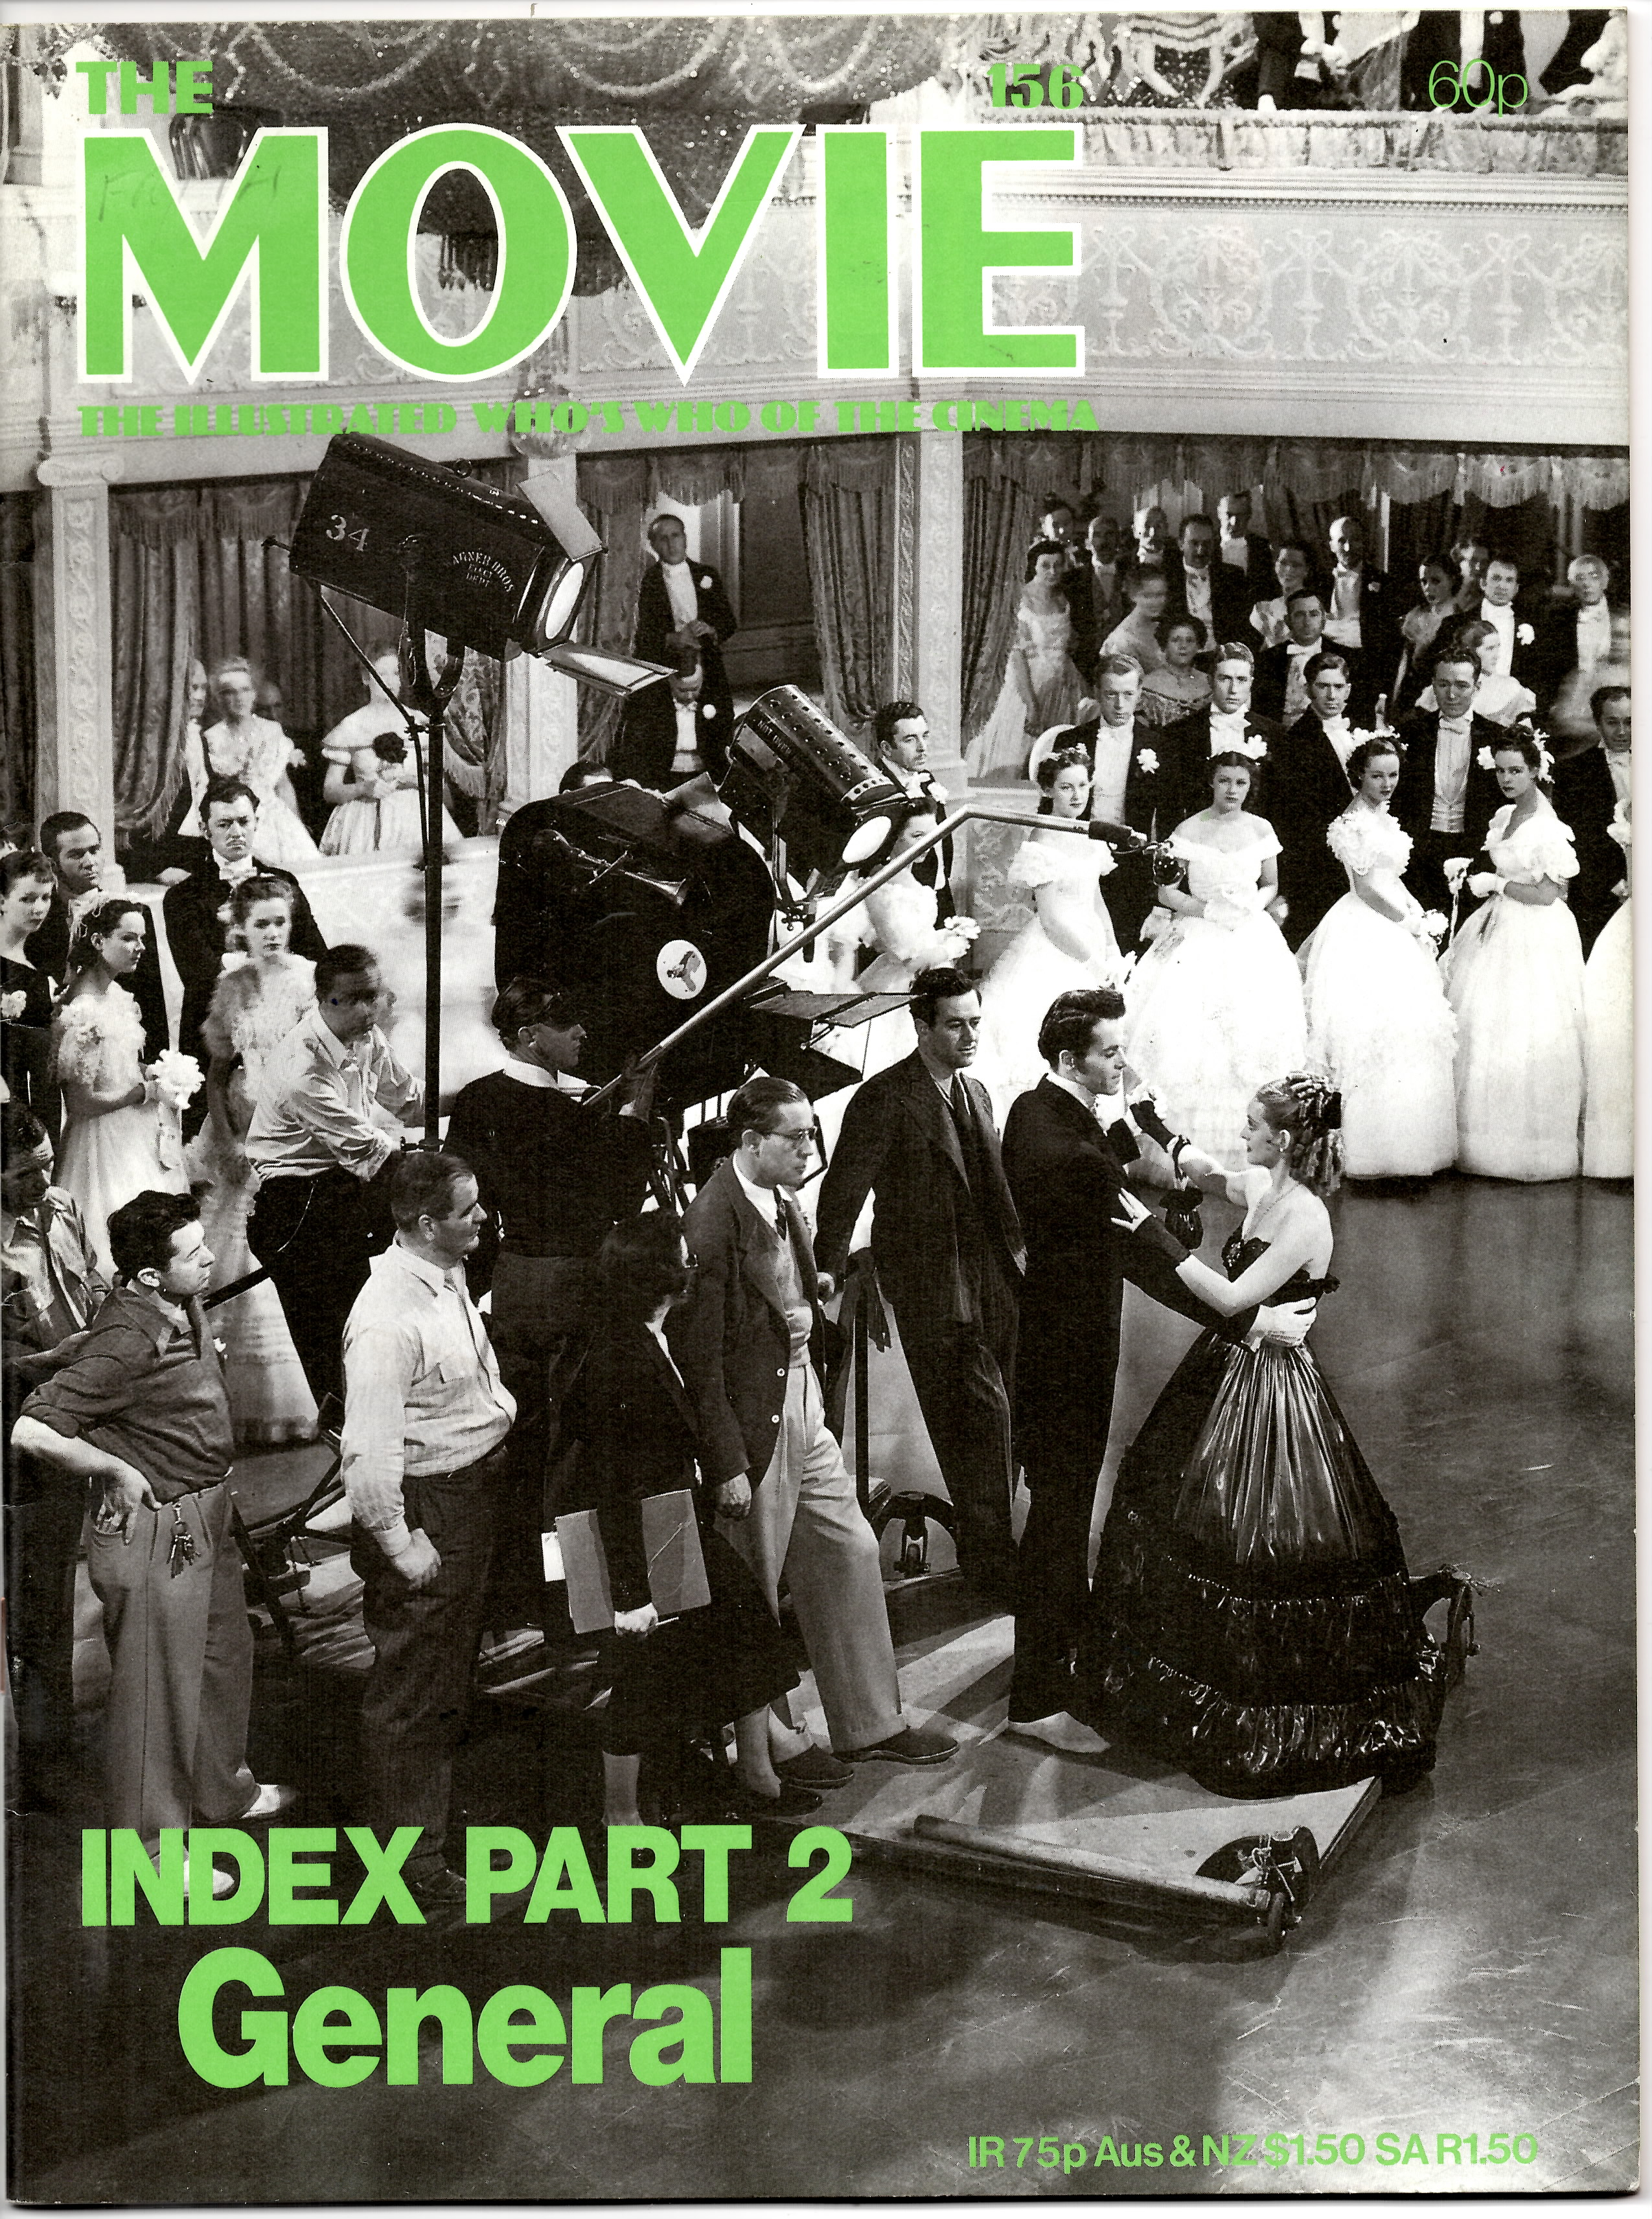 The Movie Chapter 156 : Index part 2 - General & Subject - original  soundtrack buy it online at the soundtrack to your life